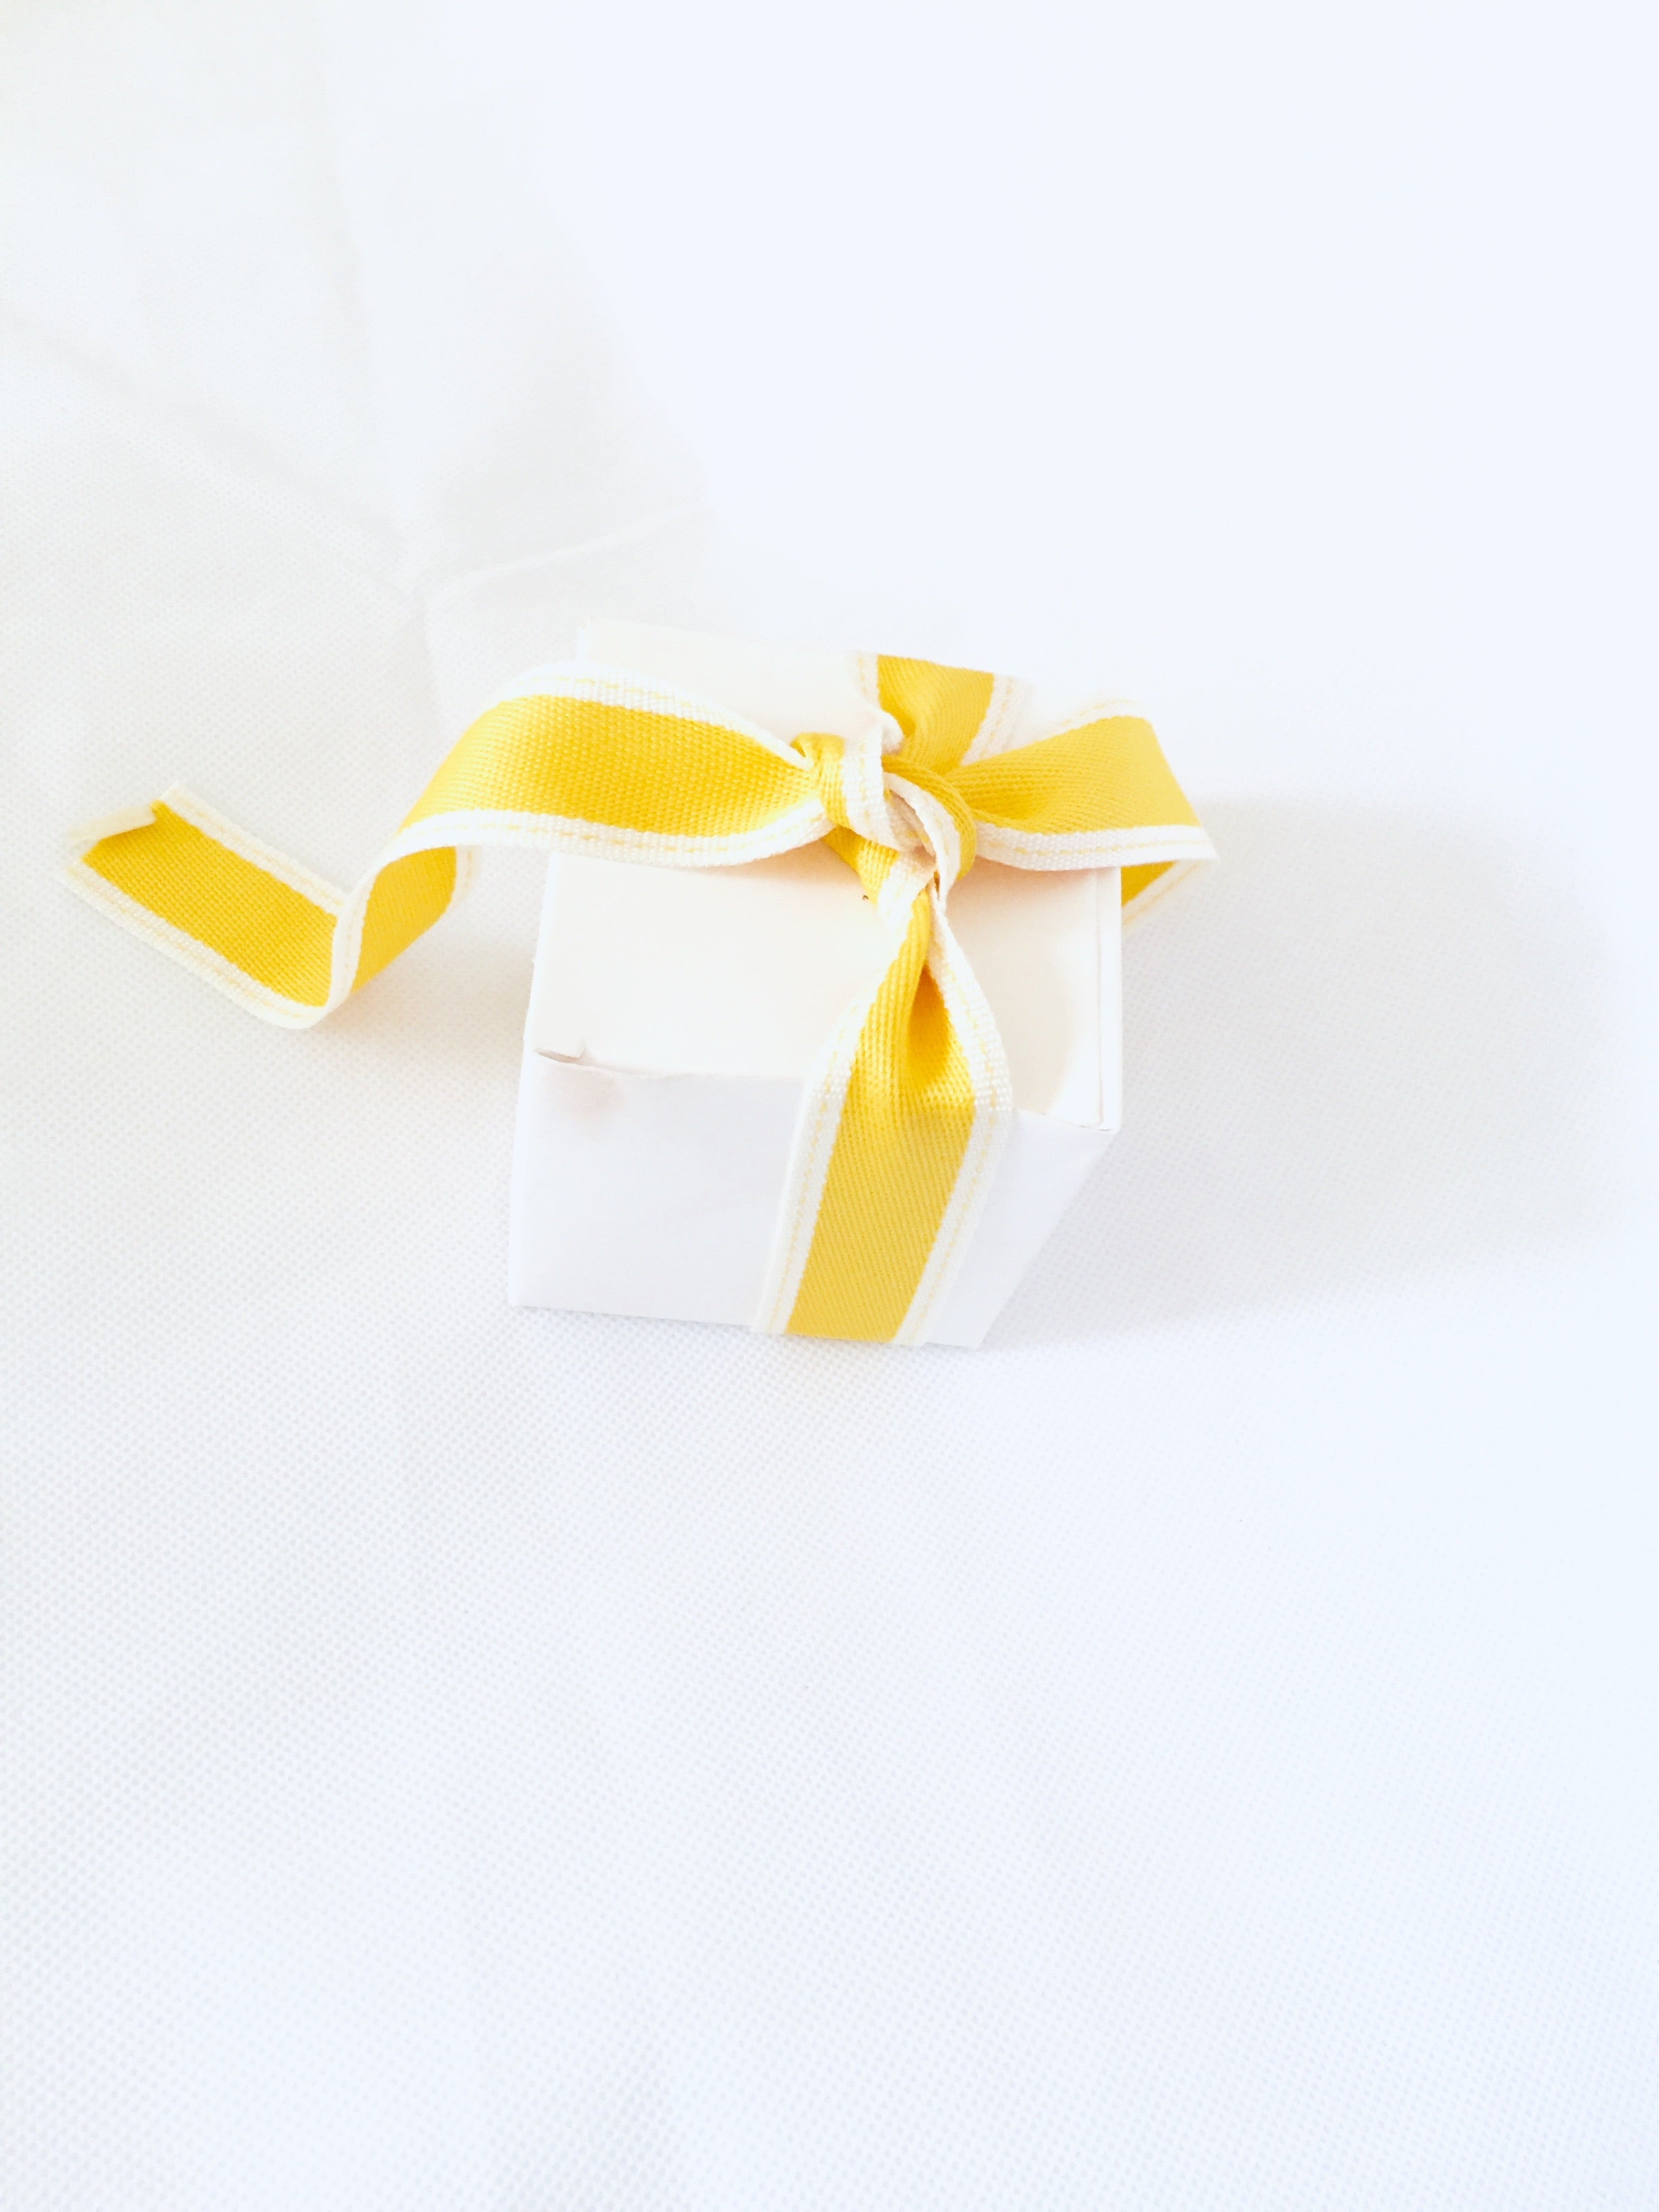 White Favour Boxes - cake boxes, cupcake boxes, thecakeboxes